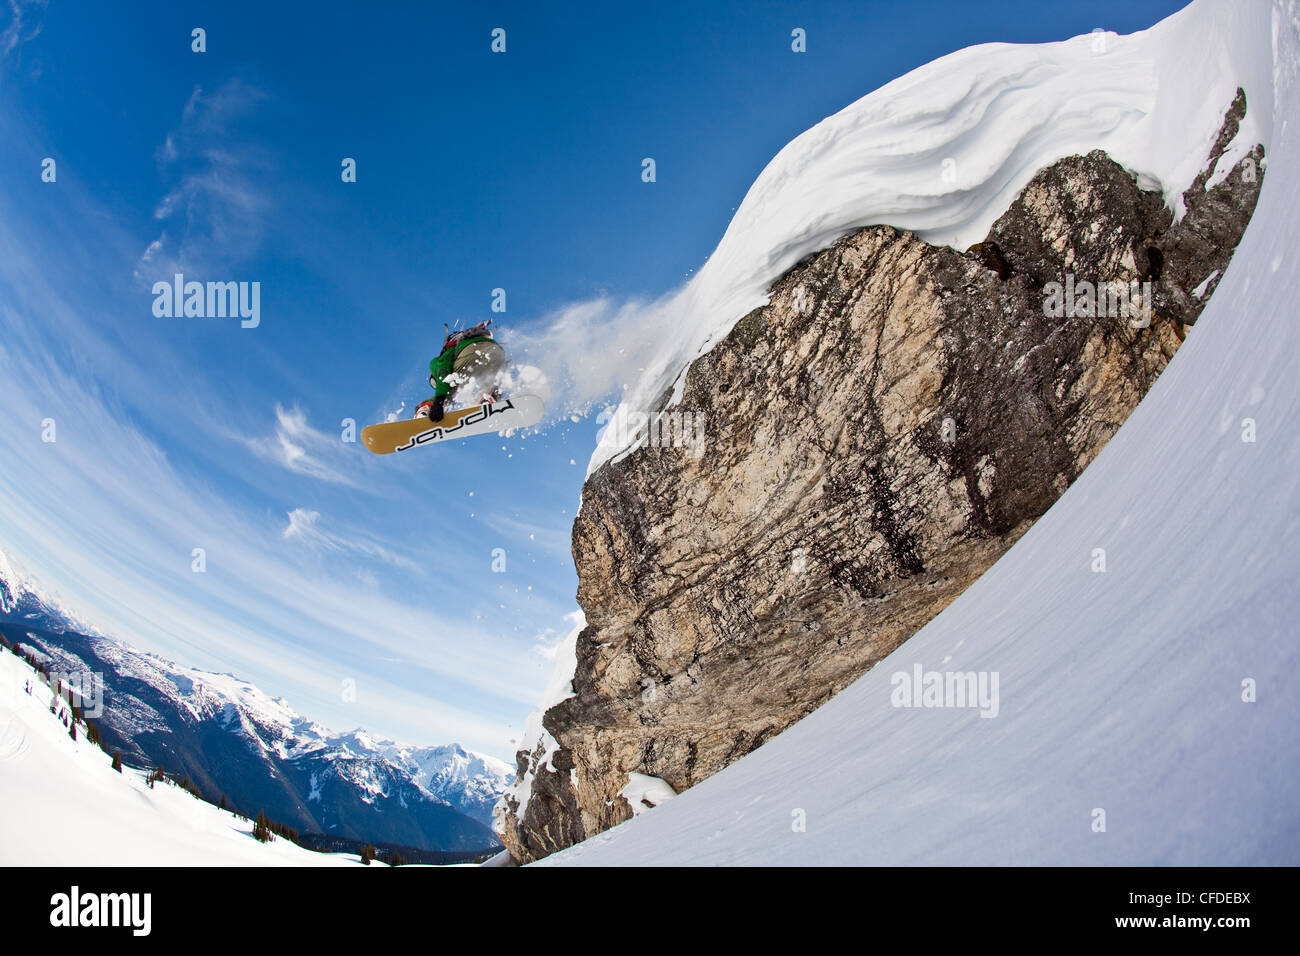 A snowboarder airs off a snow pillow while on a cat ski trip. Monashee Mountains, Vernon, Britsh Columbia, Canada - Stock Image